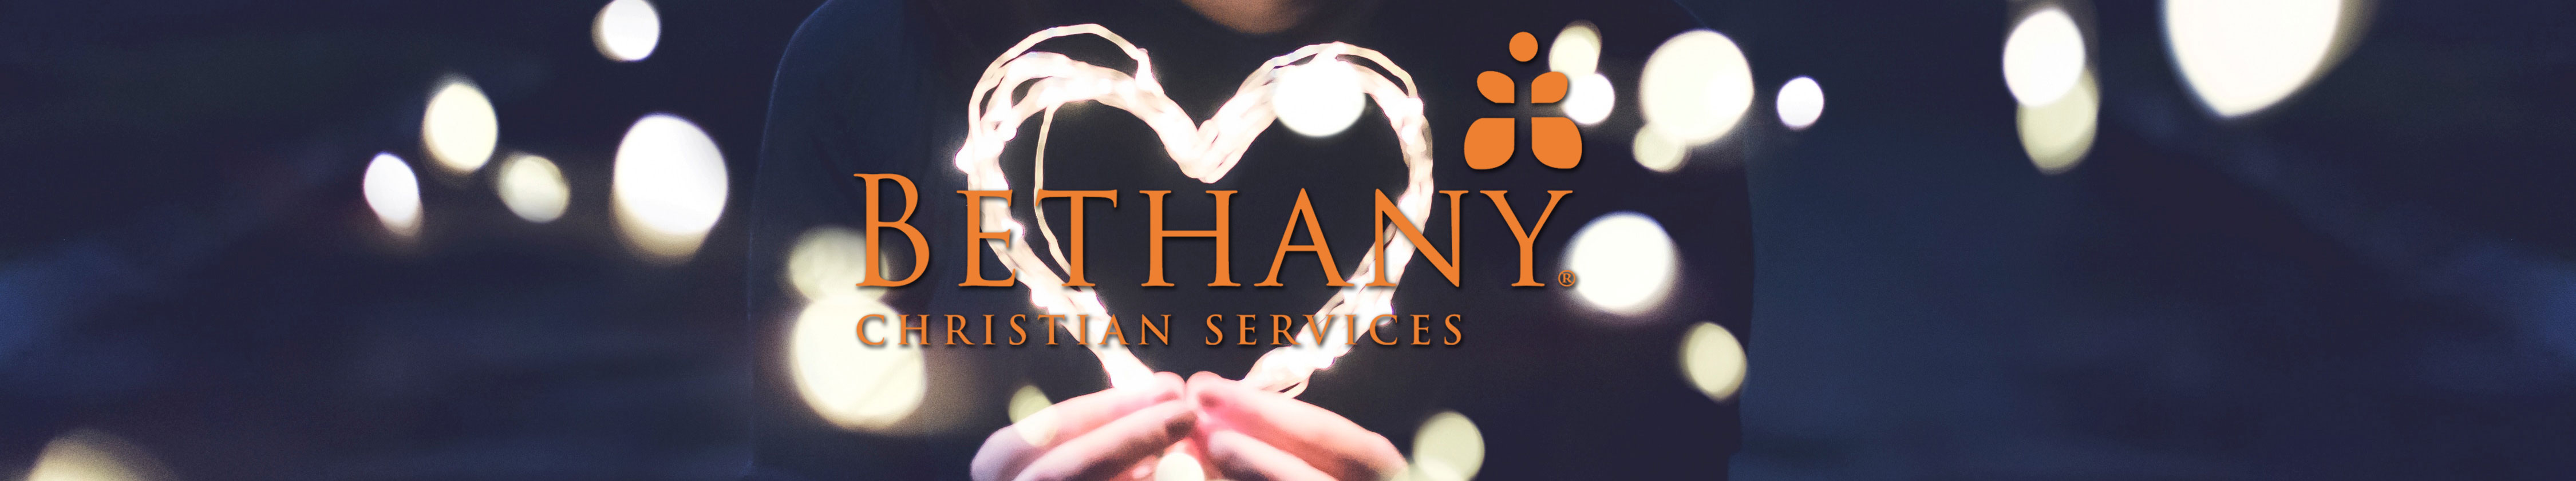 Bethany Christian Services banner